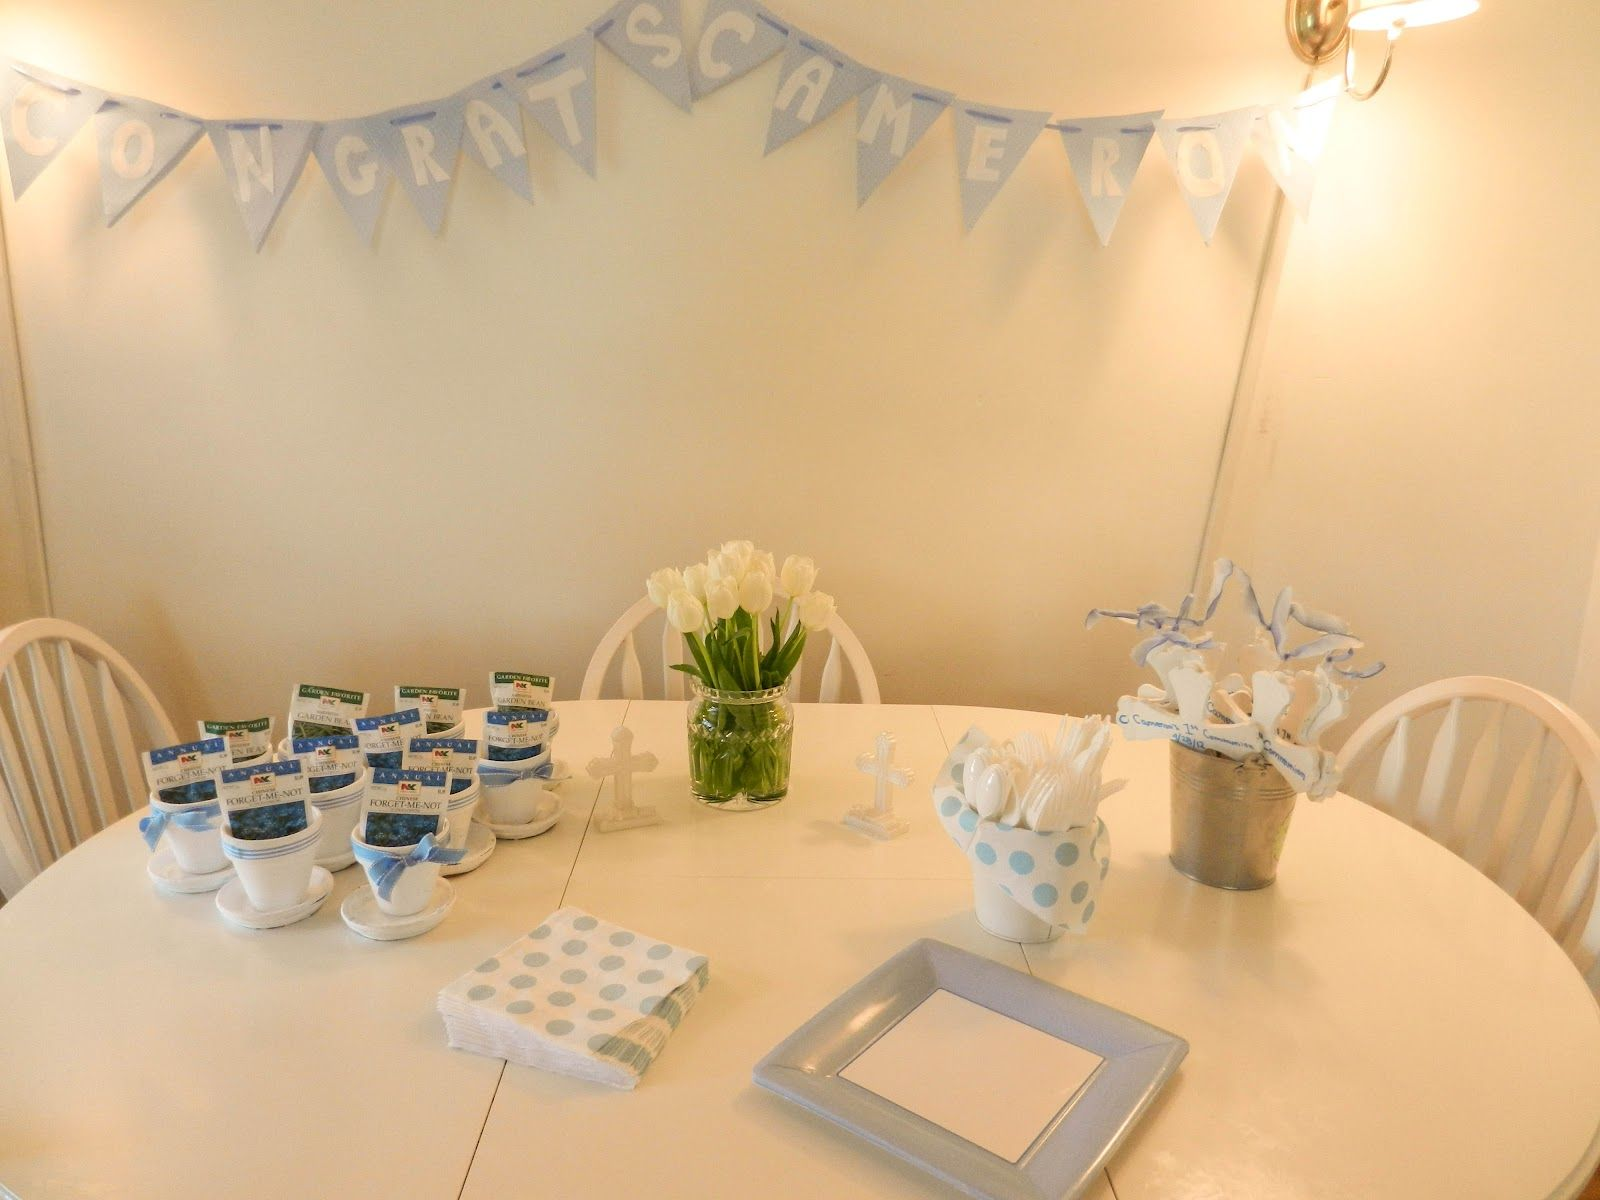 I love entertaining and the details that go into making a party